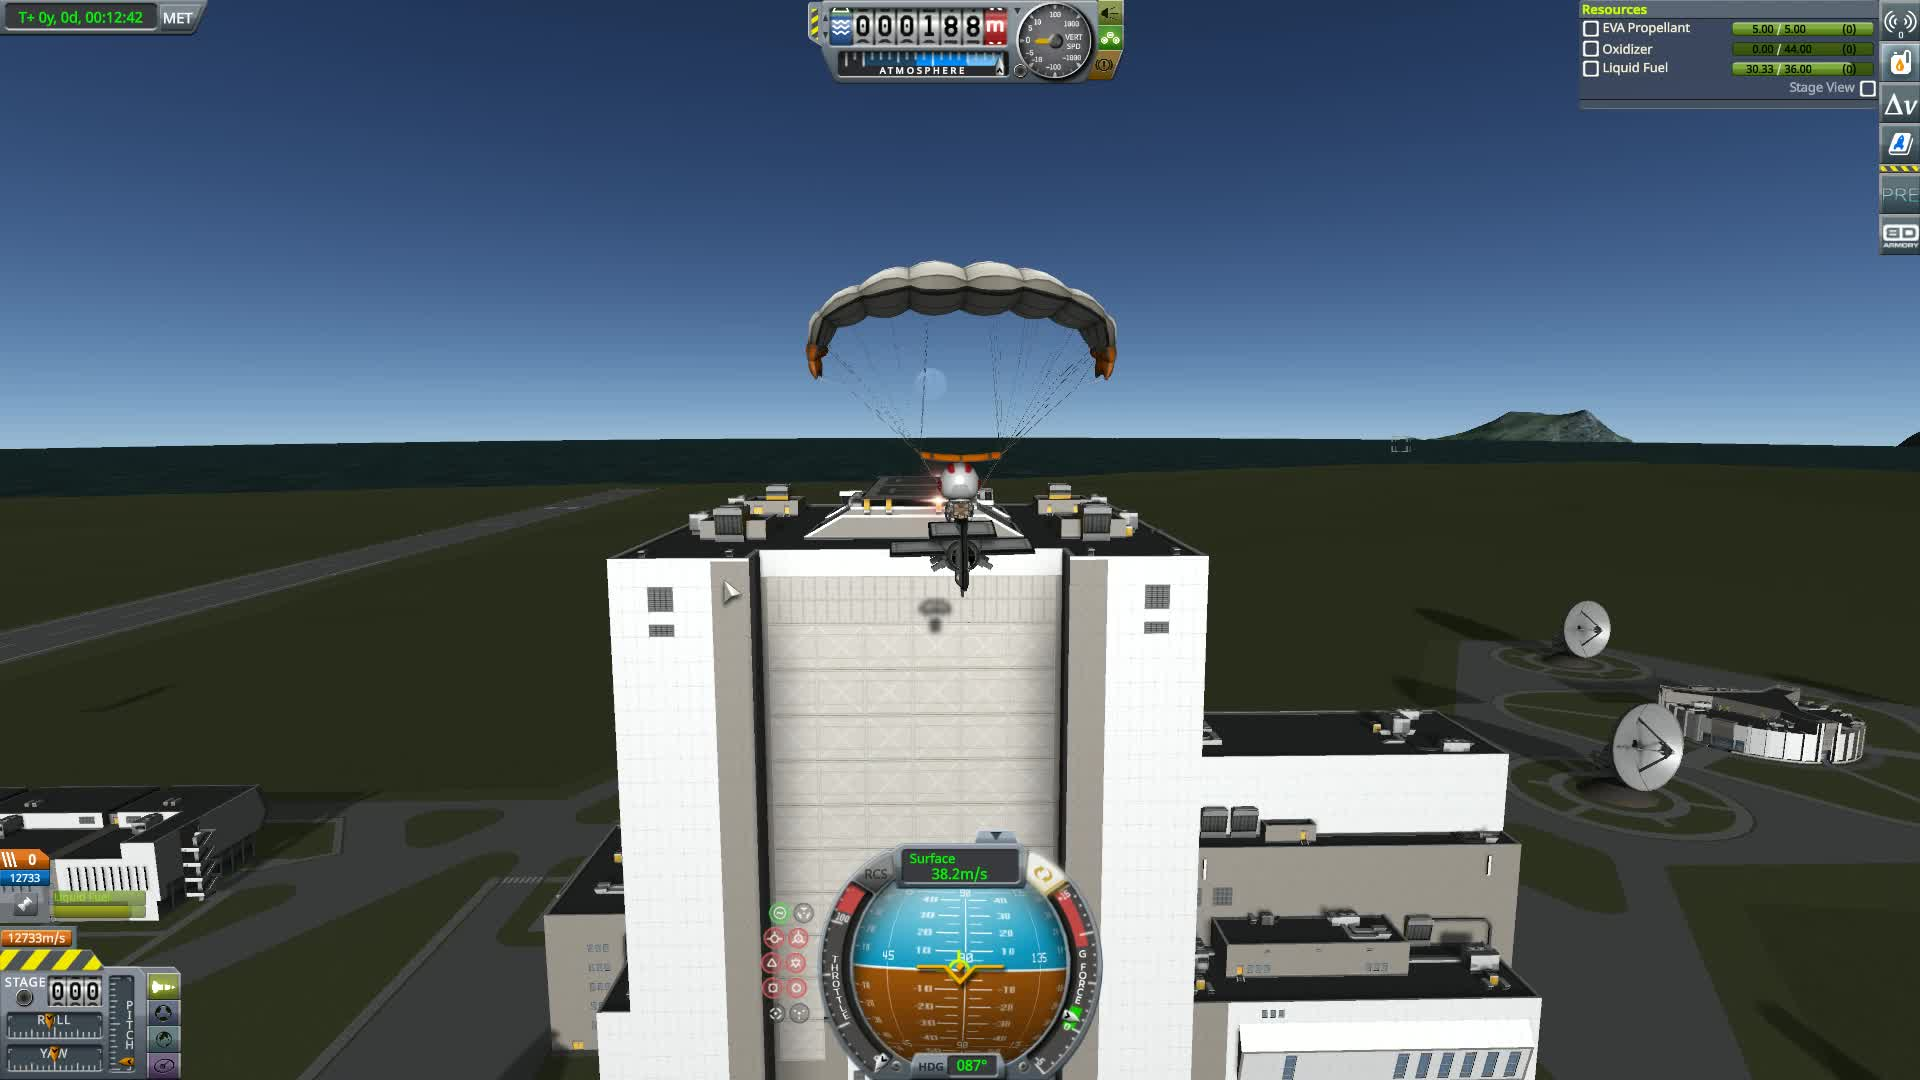 kerbalspaceprogram, Kerbal Space Program 2019.04.14 - 21.58.00.09.DVR GIFs